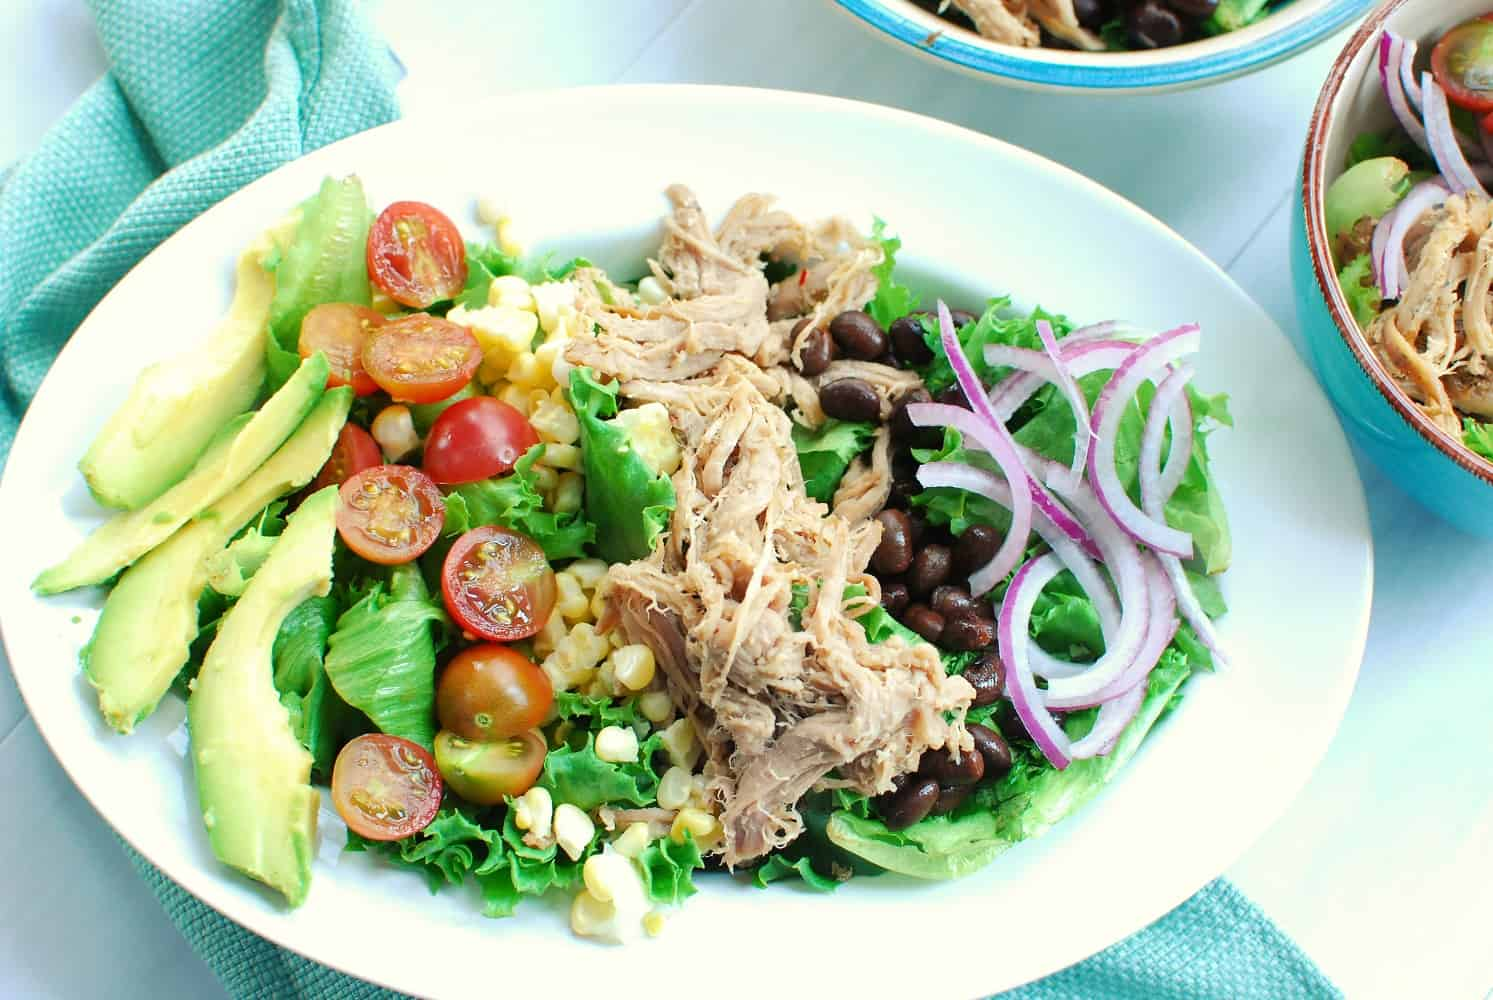 Bowl of carnitas salad with salsa verde dressing